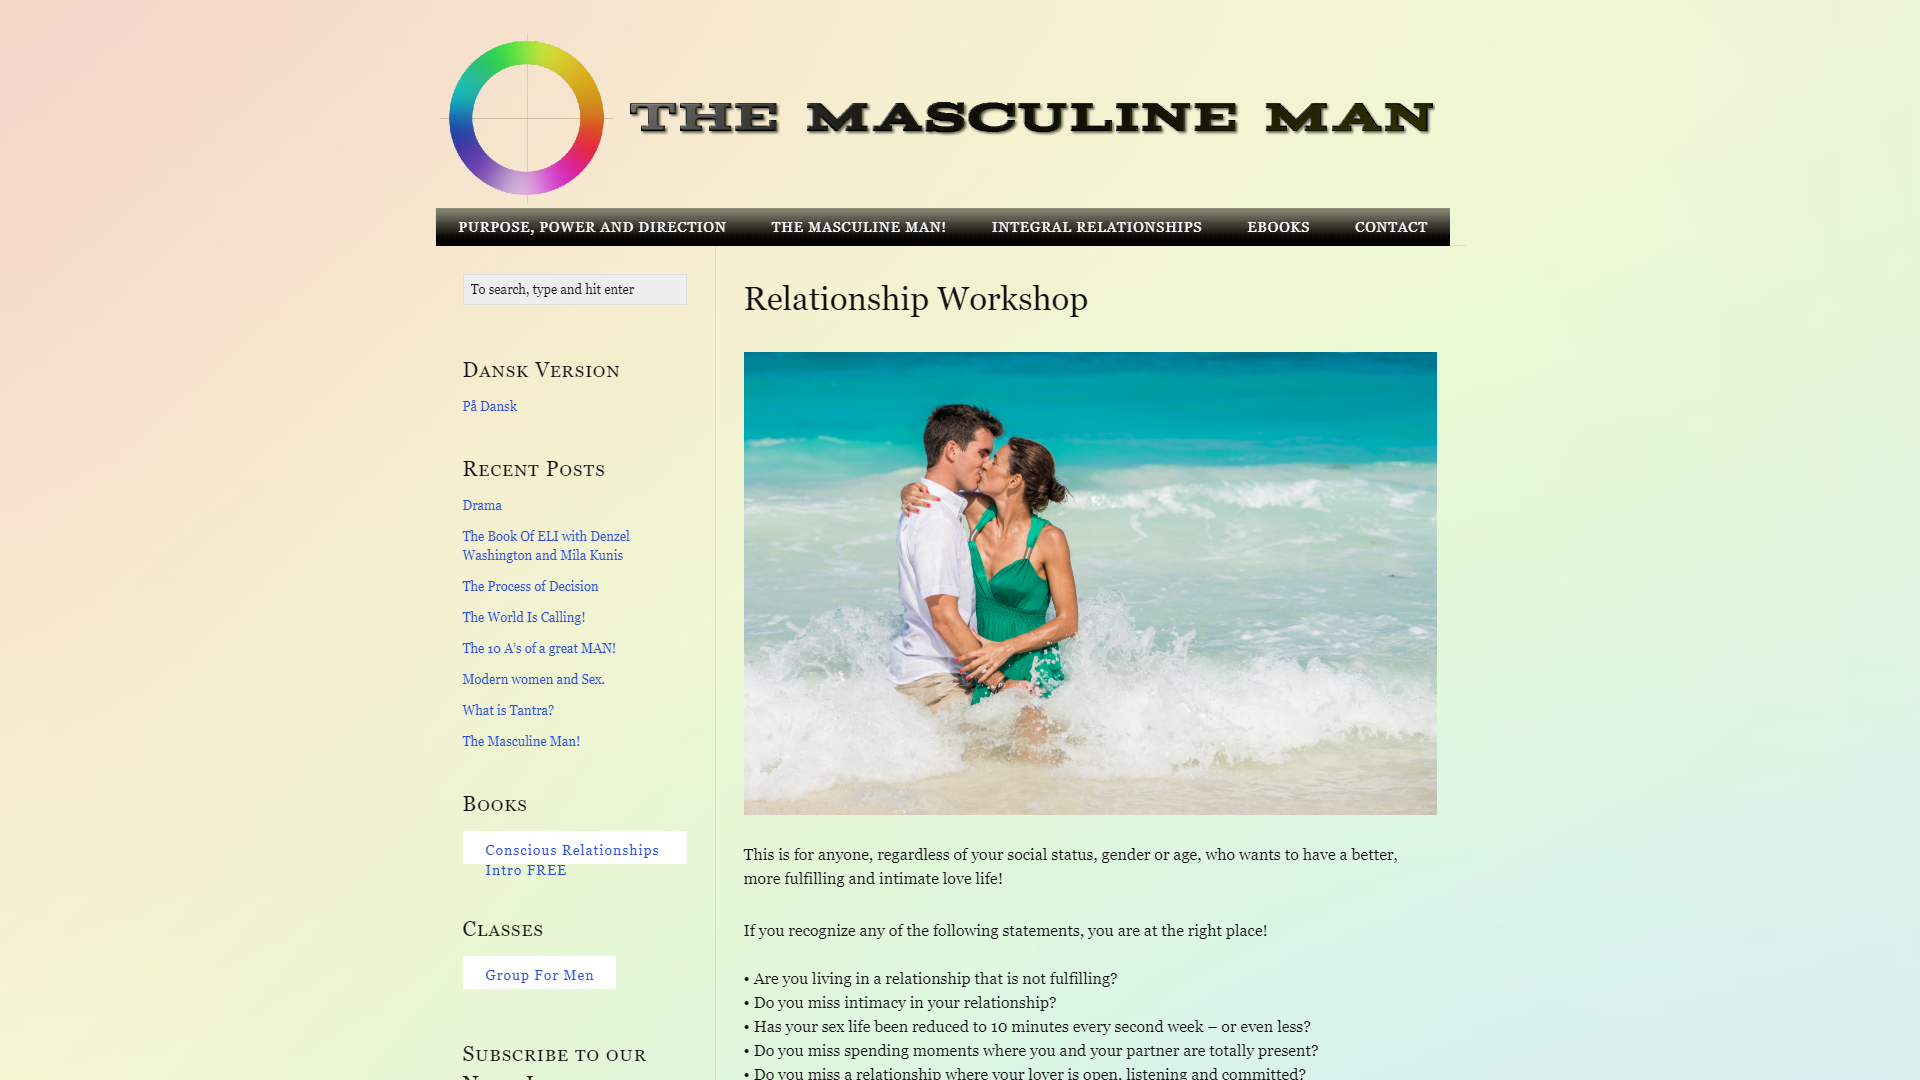 The Masculine Man